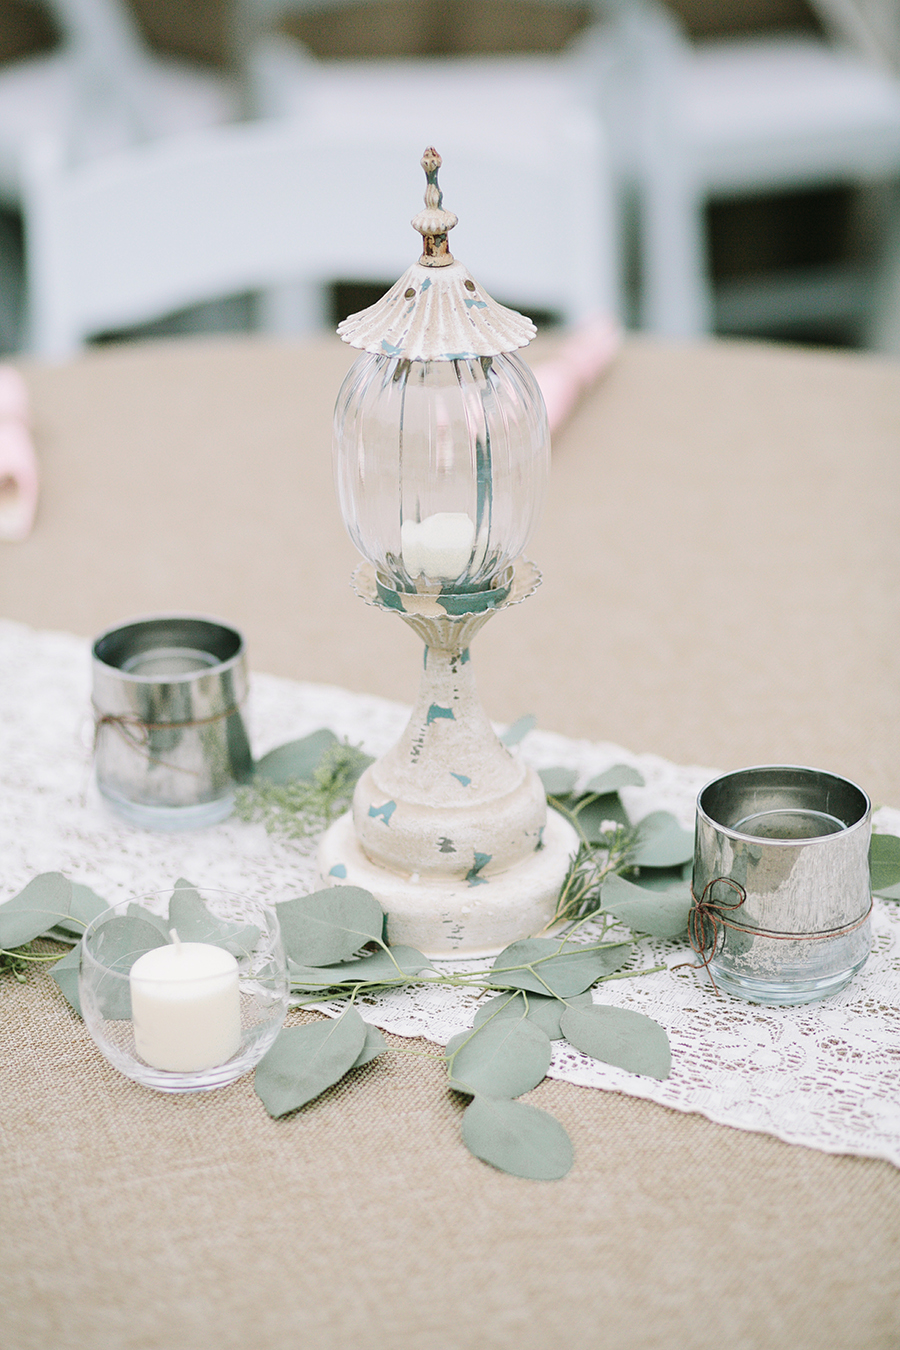 Lantern Centerpiece with Greenery